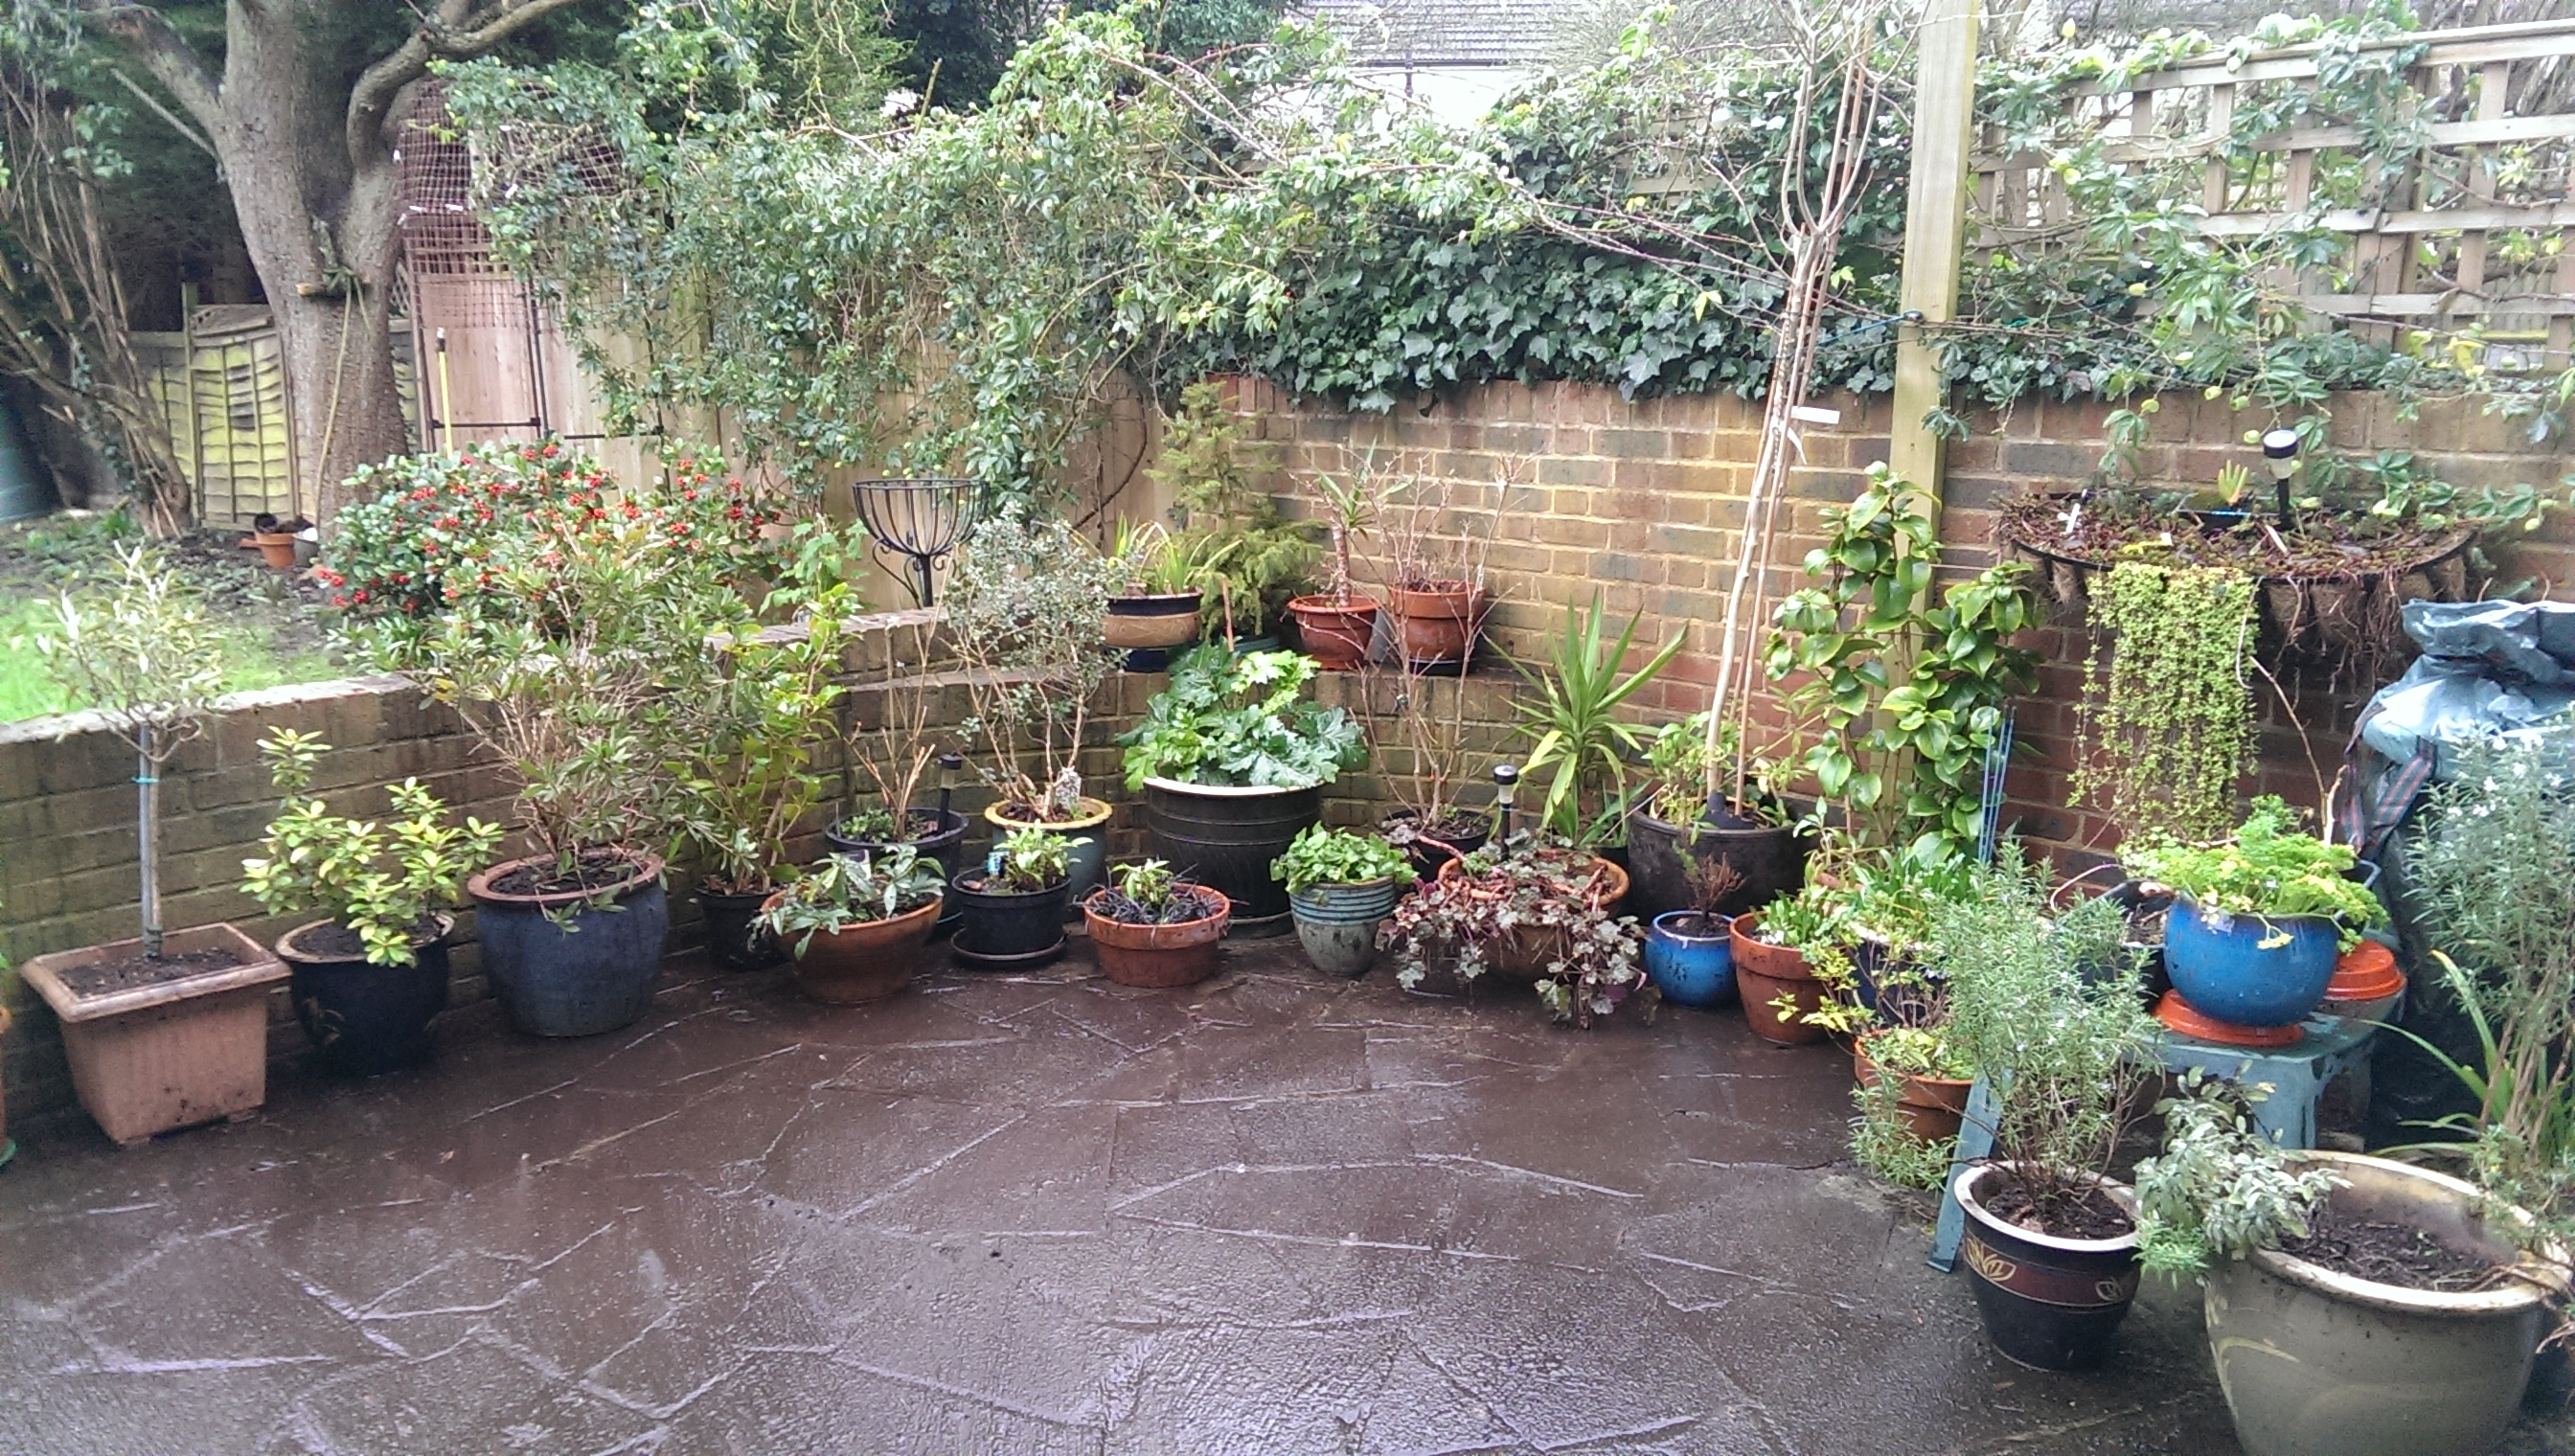 ... Potting On And Repotting, Pruning Winter Dead Material, Rescuing Dying  Grasses, Clearing Dead Leaves And Other Matter, And Rearranging The  Containers ...